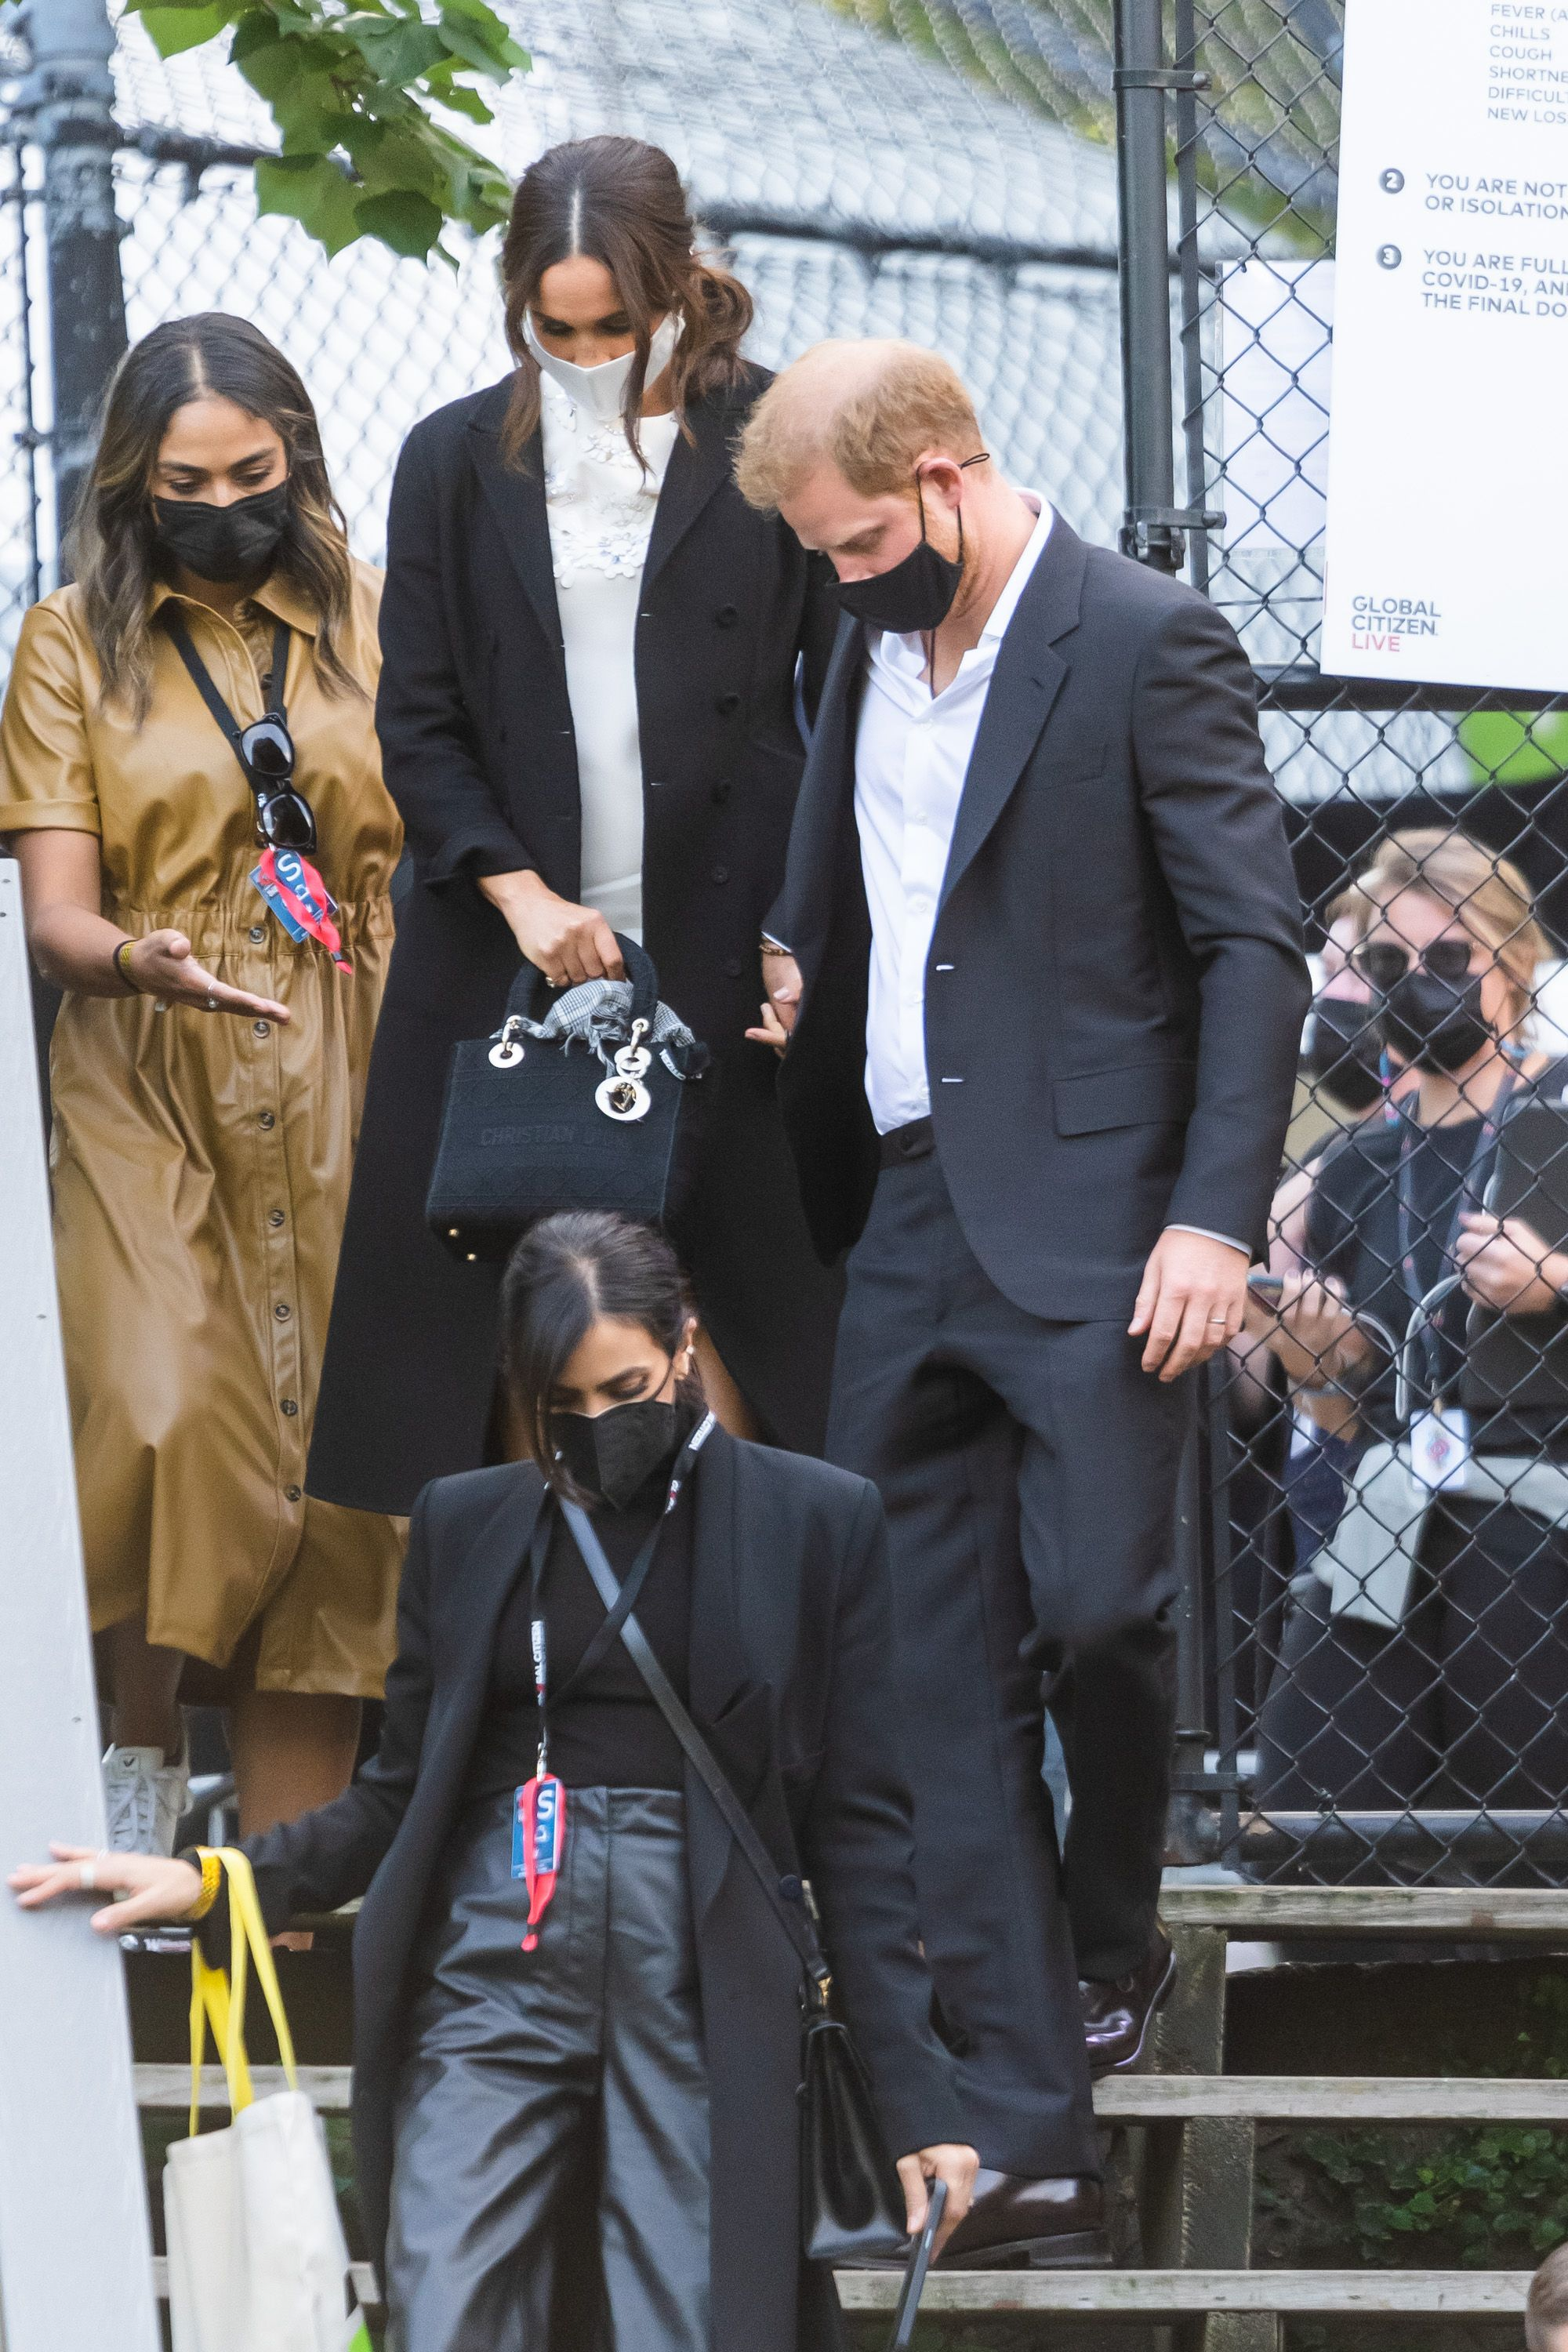 The Duchess of Sussex's Dior bag was a tribute to Princess Diana